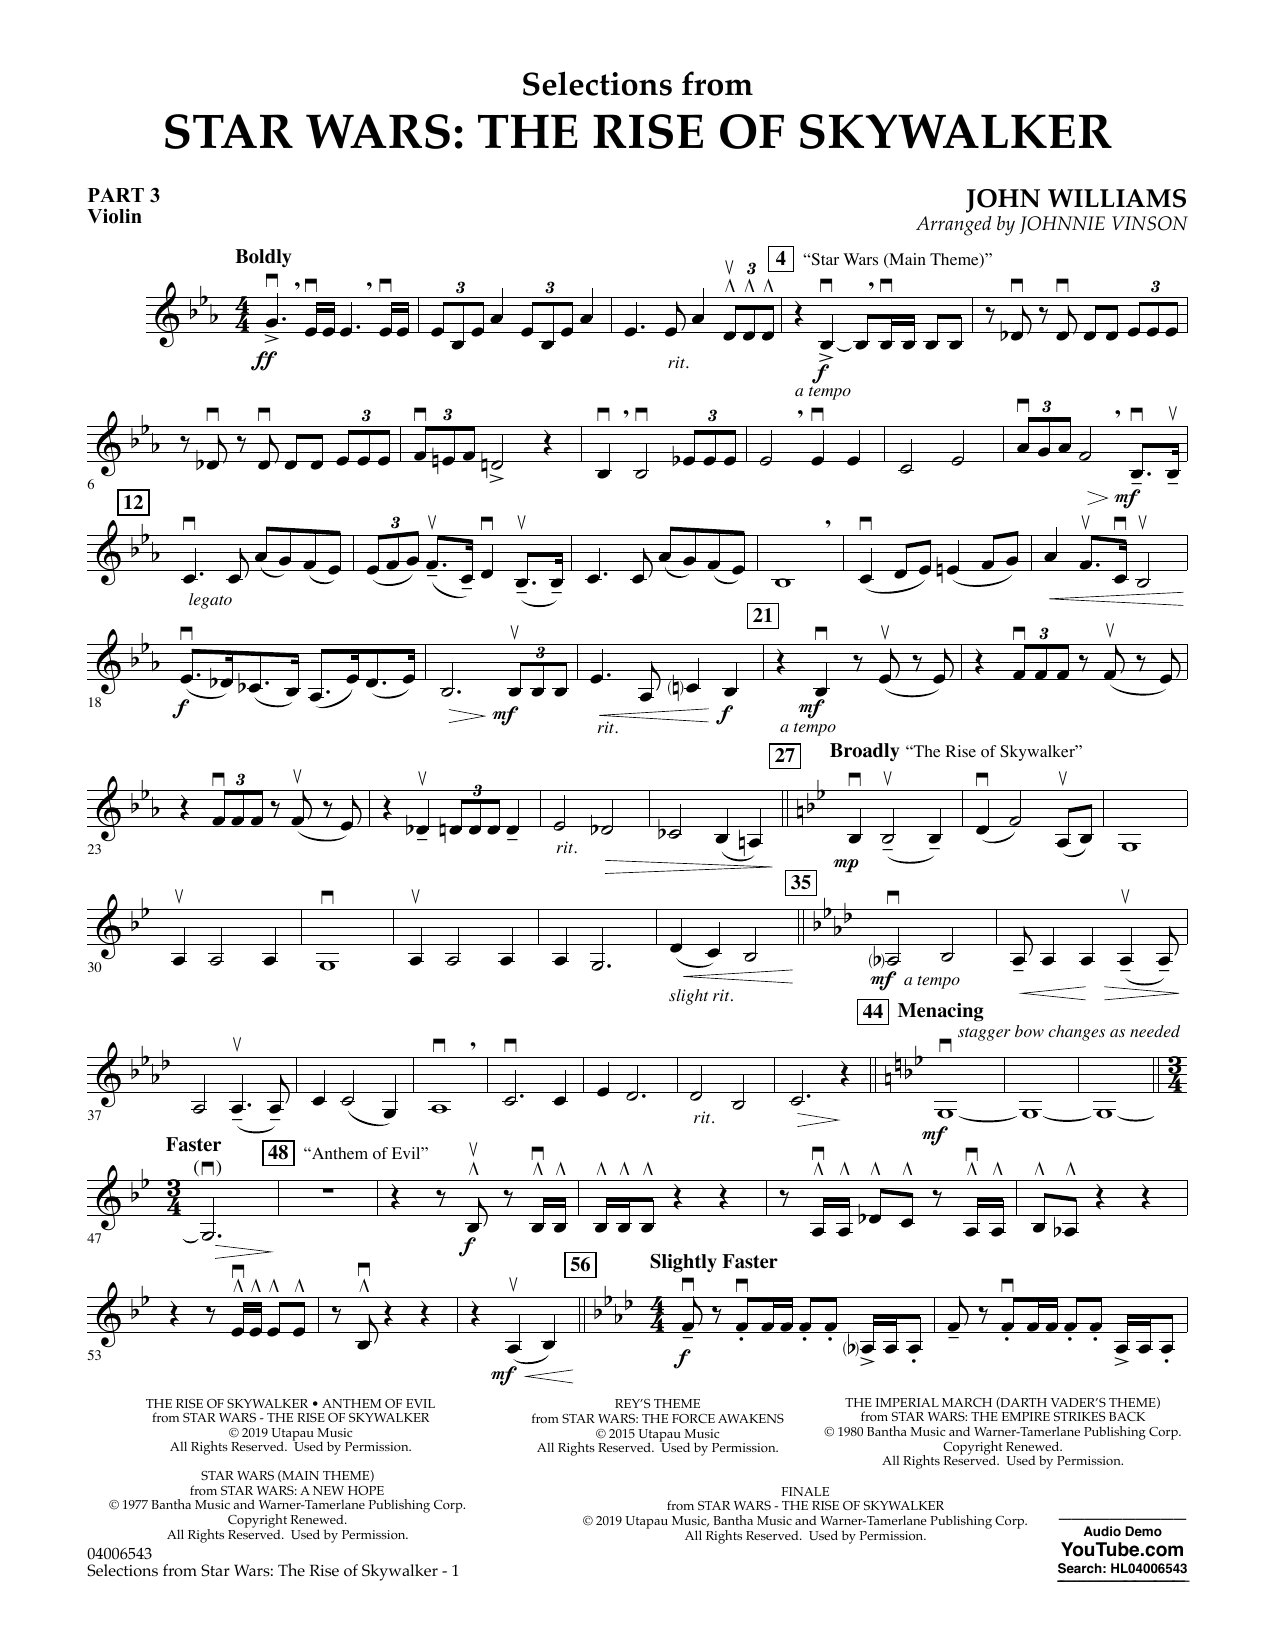 John Williams Selections from Star Wars: The Rise of Skywalker - Pt.3 - Violin sheet music notes and chords. Download Printable PDF.